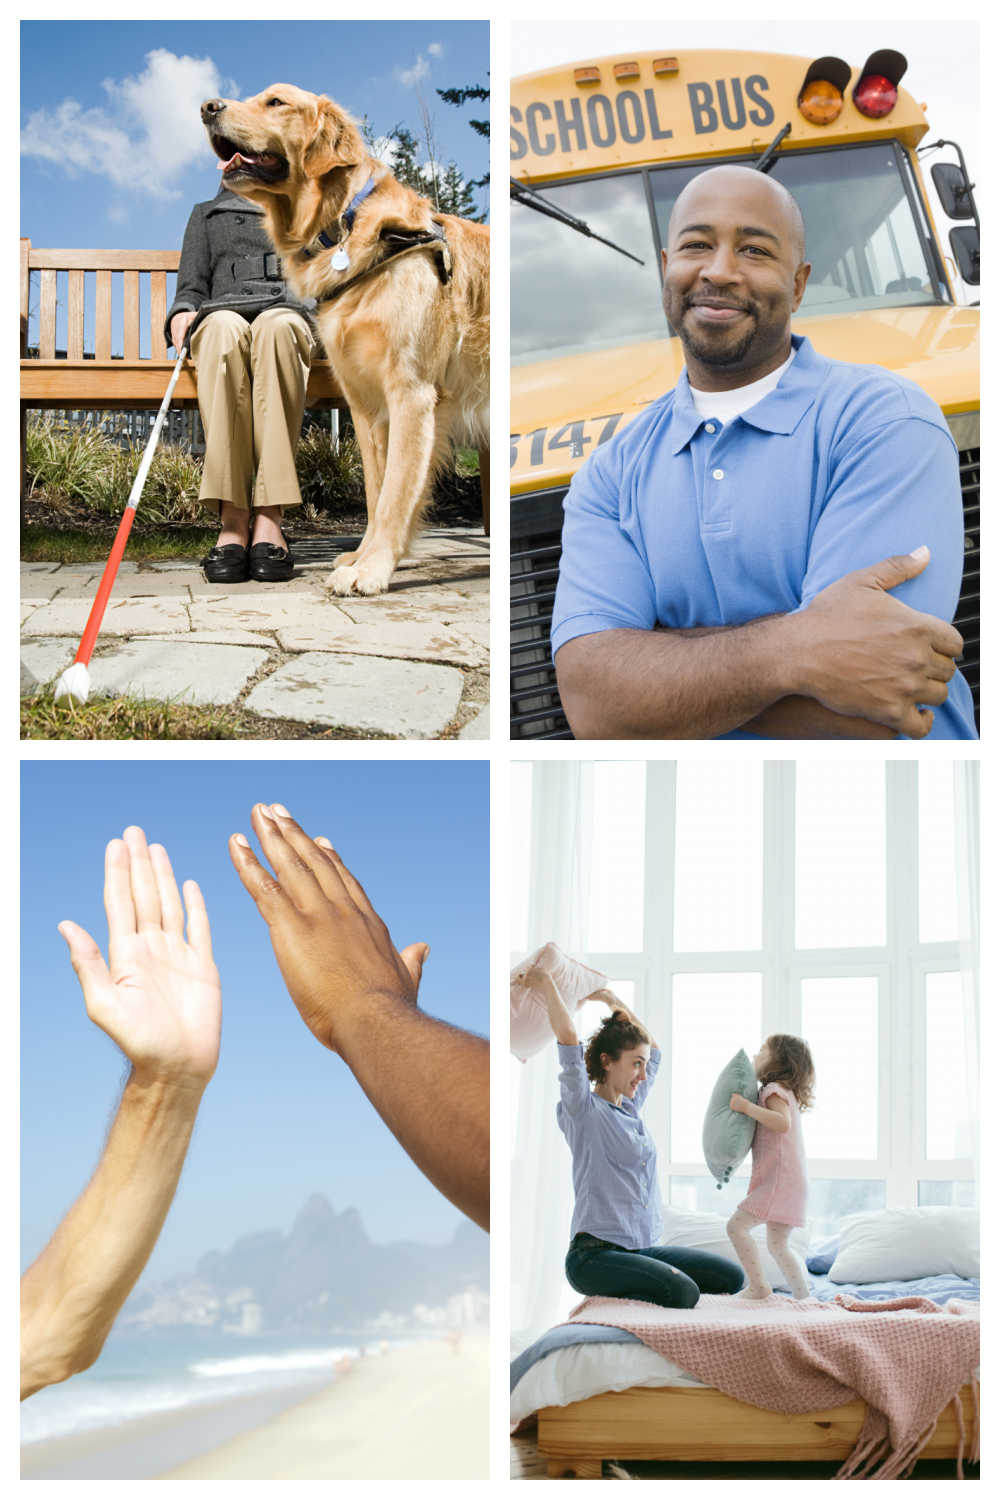 High five, pillow fight, school bus driver, and guide dog photos in a collage.